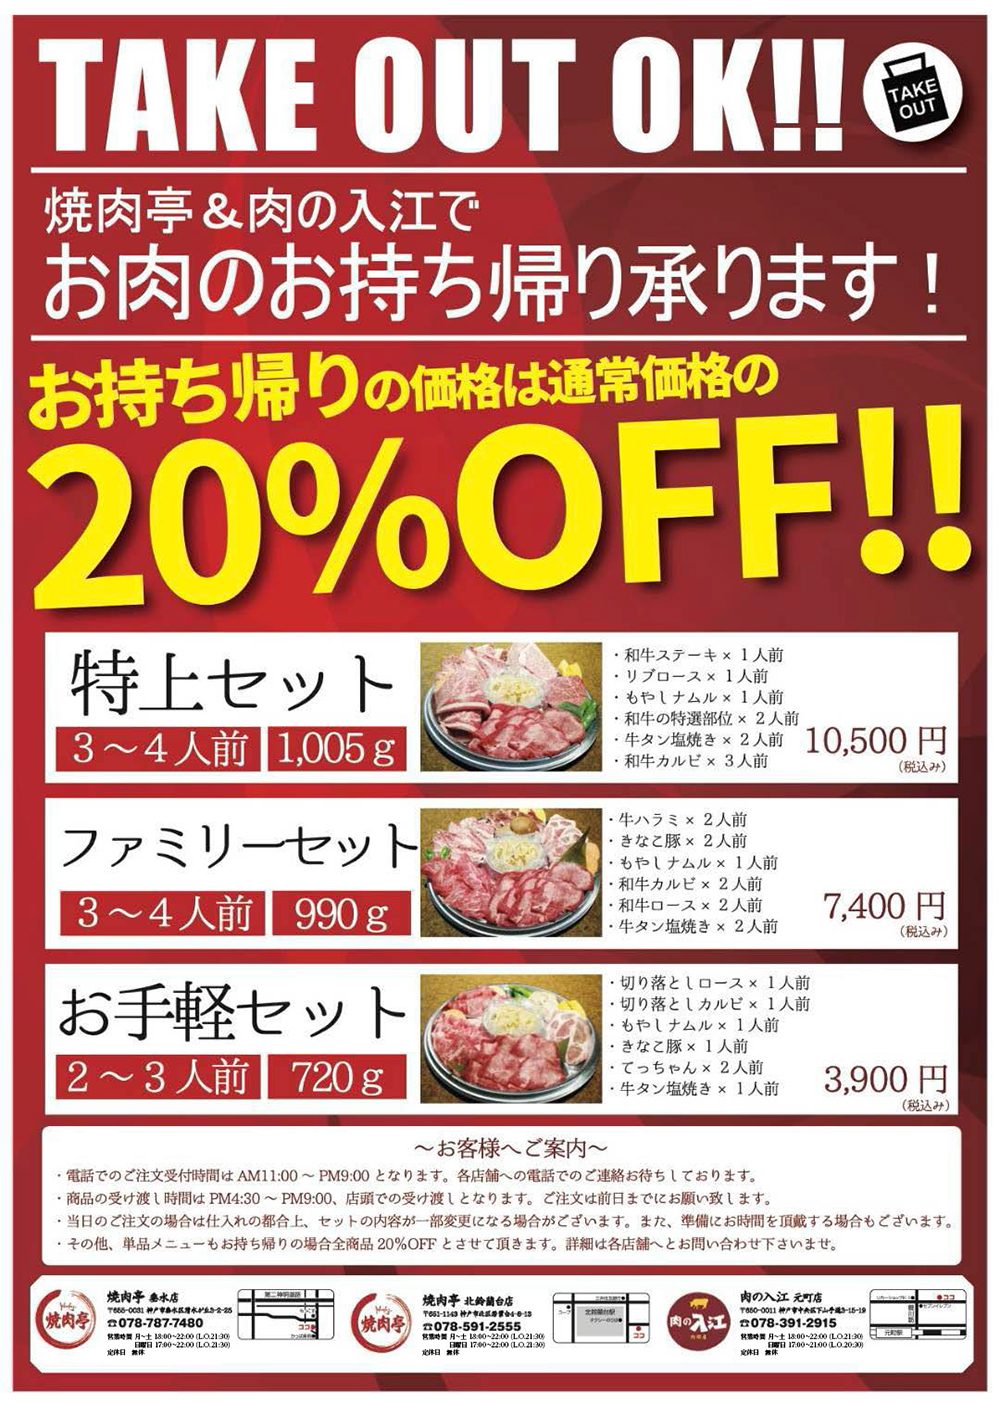 TAKE OUT OK!! お肉のお持ち帰り承ります